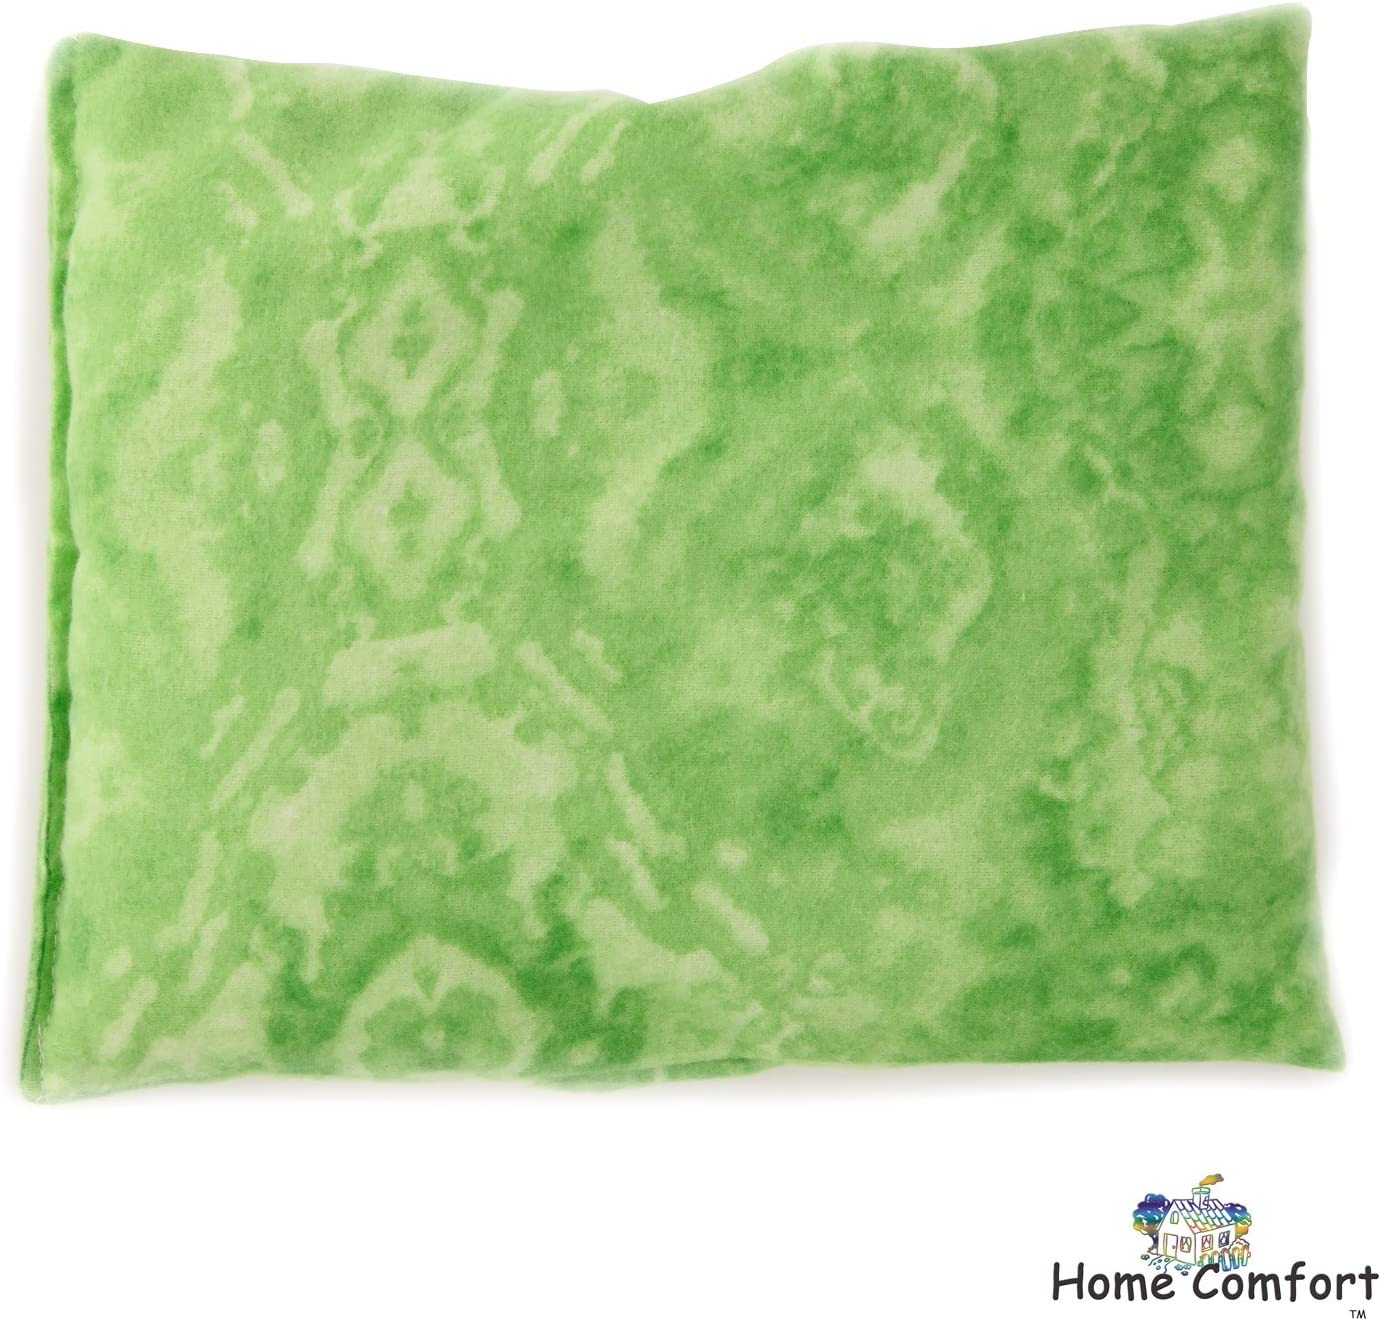 Microwaveable Heating Pad (Green)